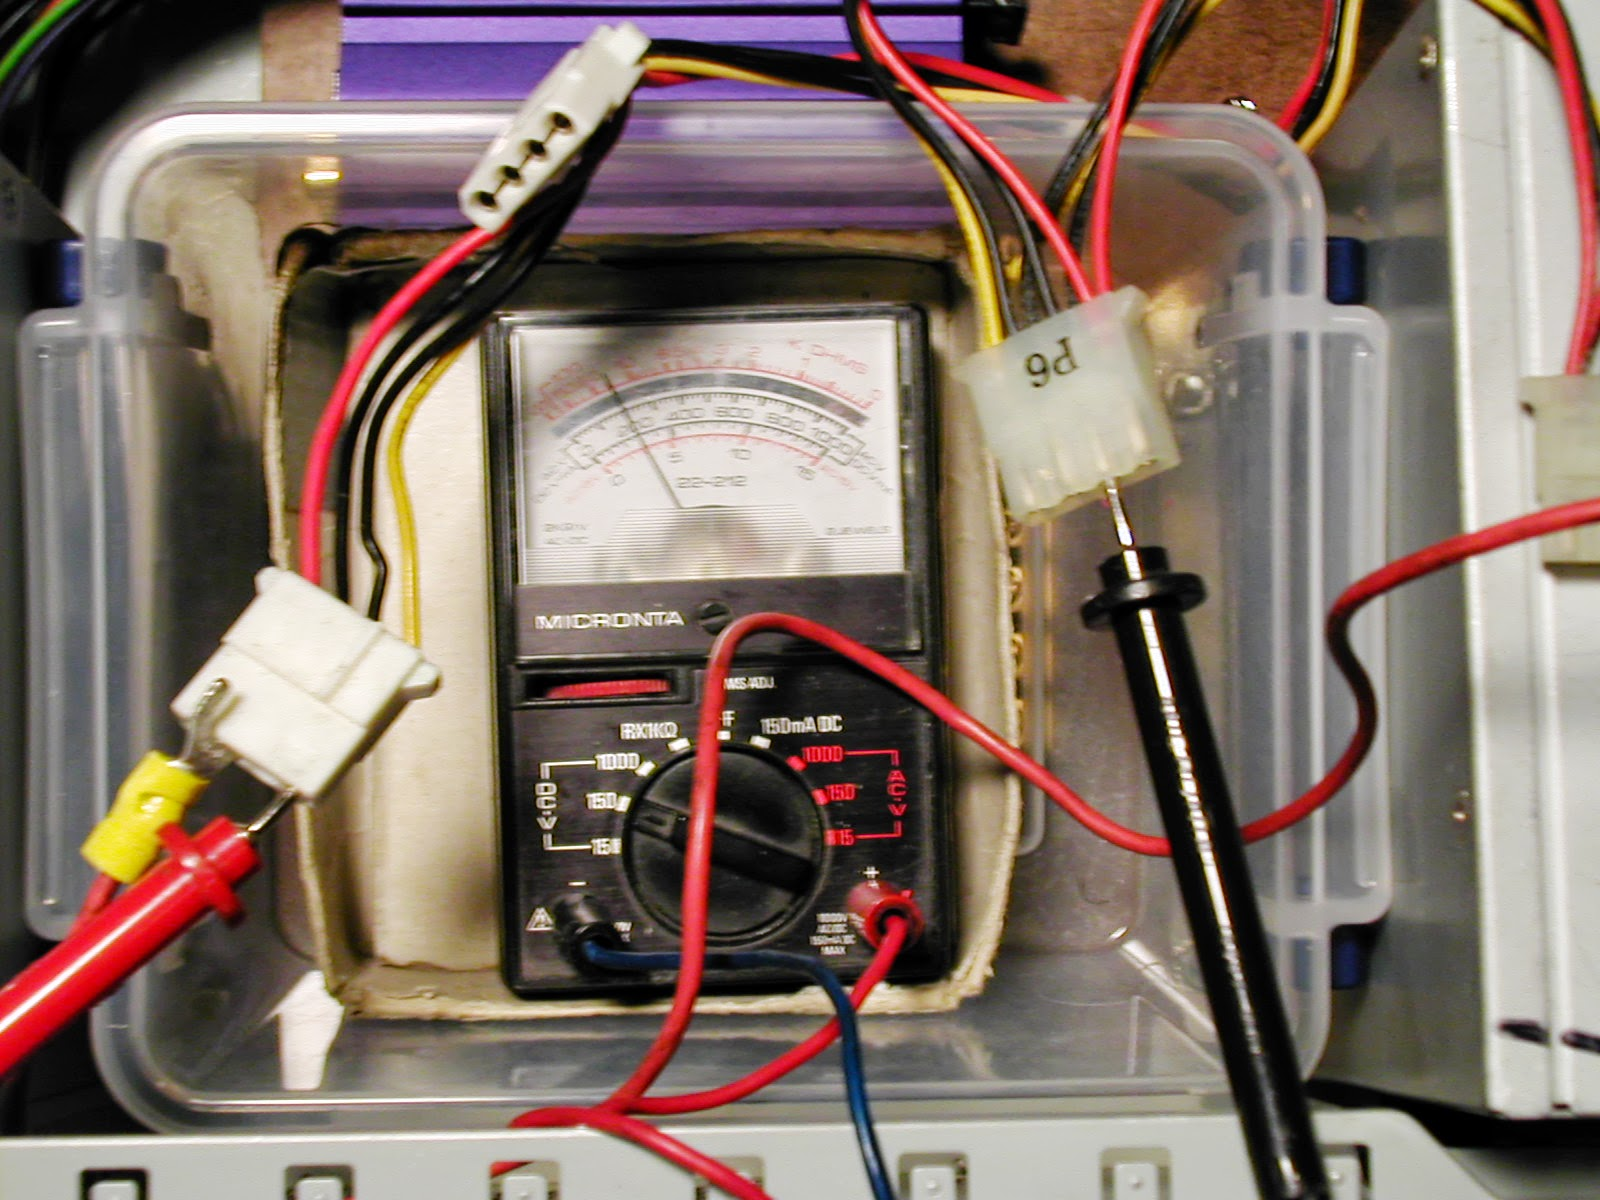 Donsdeals Blog How To Use A Multimeter For Beginners Part 1 Electronic Multimeters I Have Been Using Since 1975 And Thats Old My Is Yep It Still Works Its An Analog Radio Shack Meter